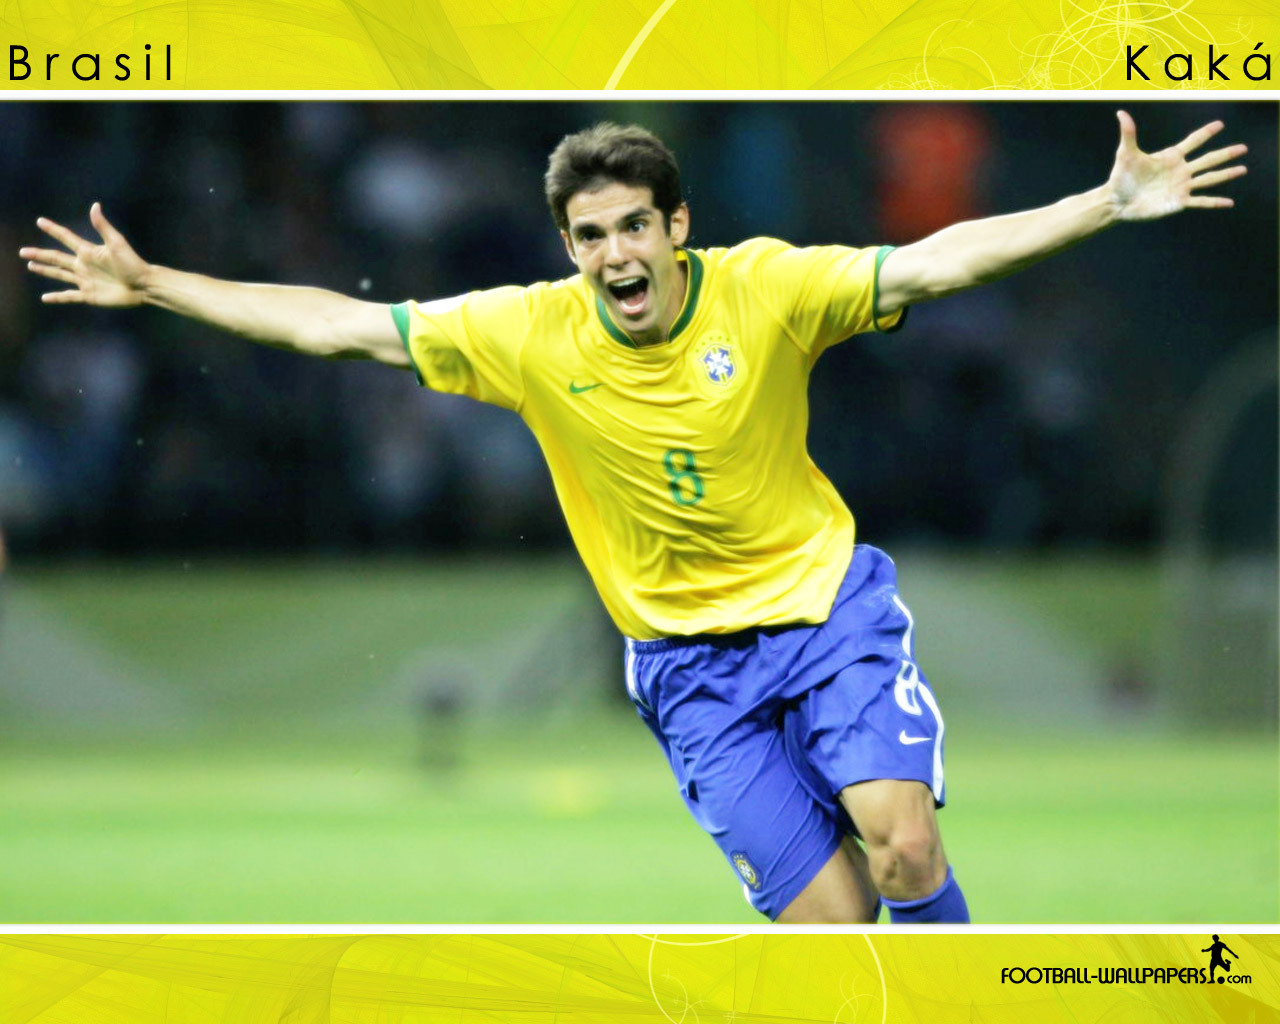 Brazil Football images Brazil Football HD wallpaper and background